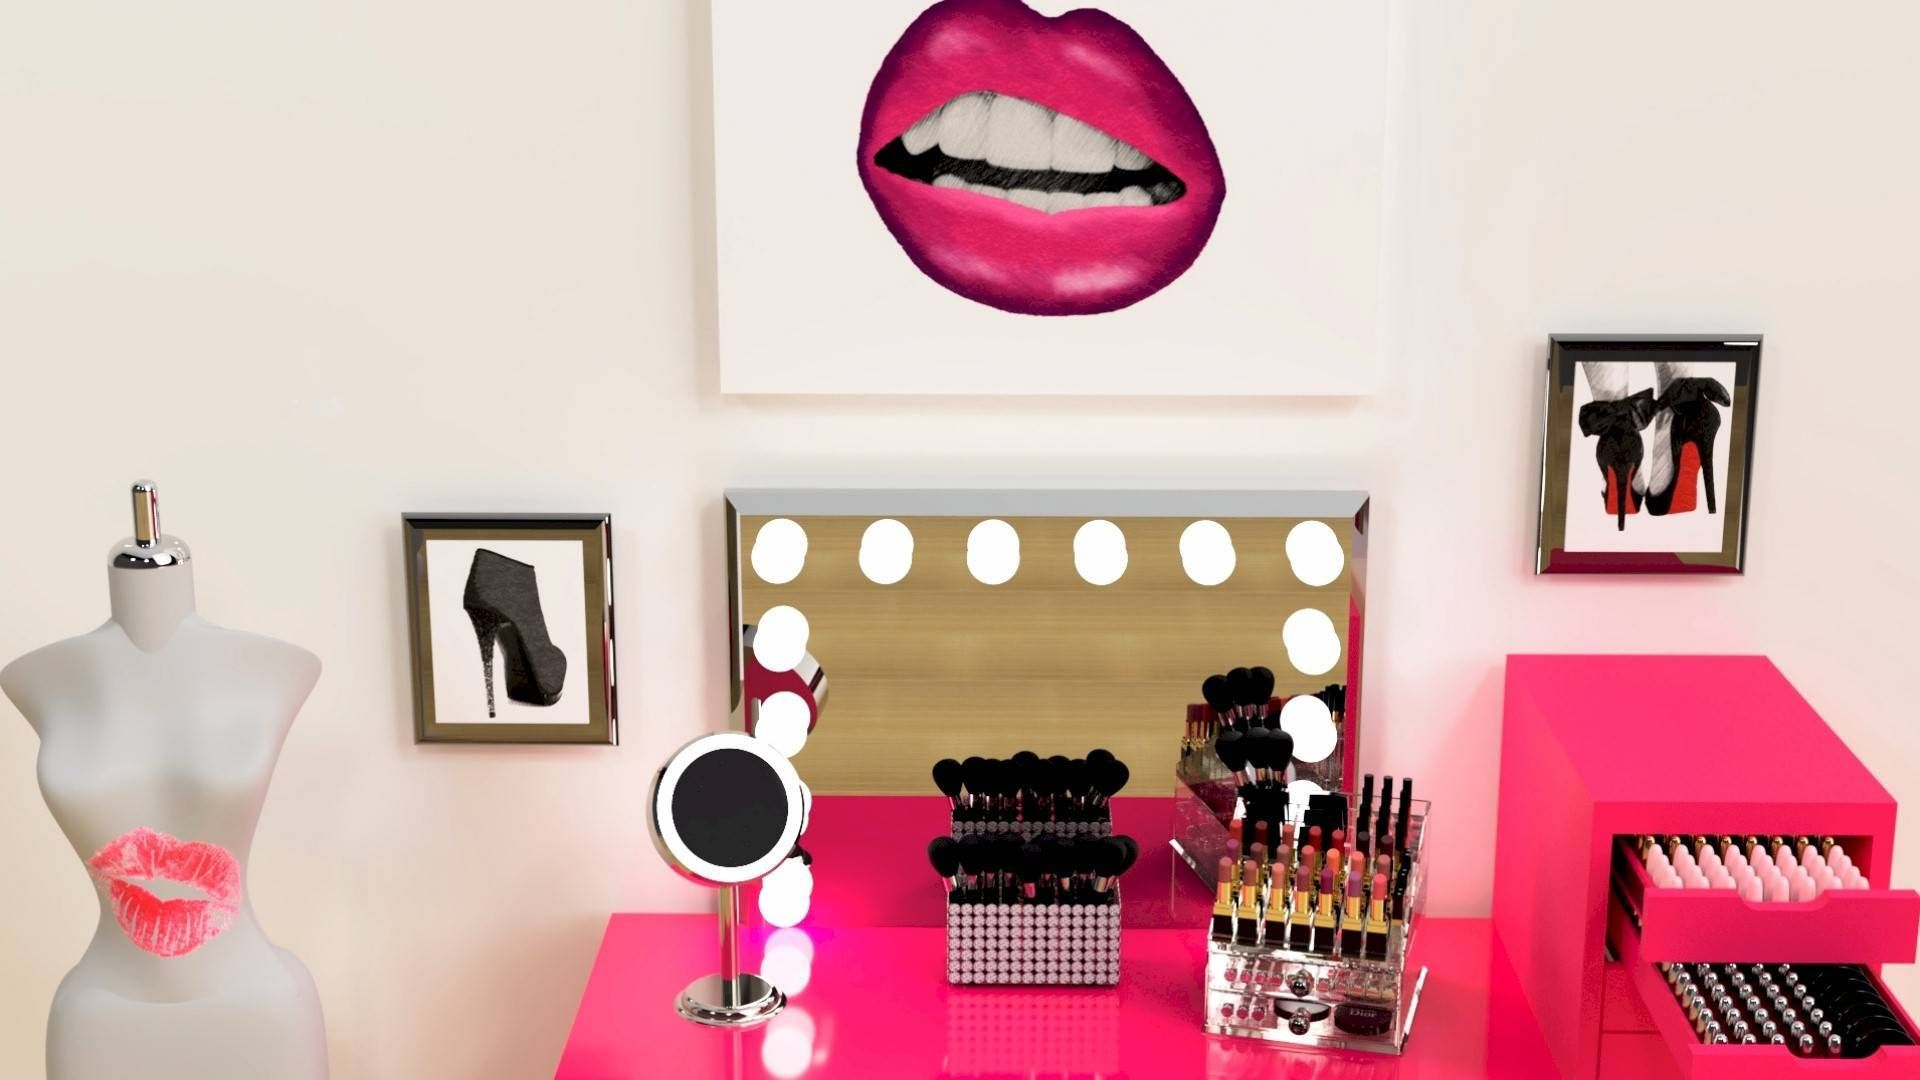 Download FREE GLAM Wall Décor For Your Beauty Room And More